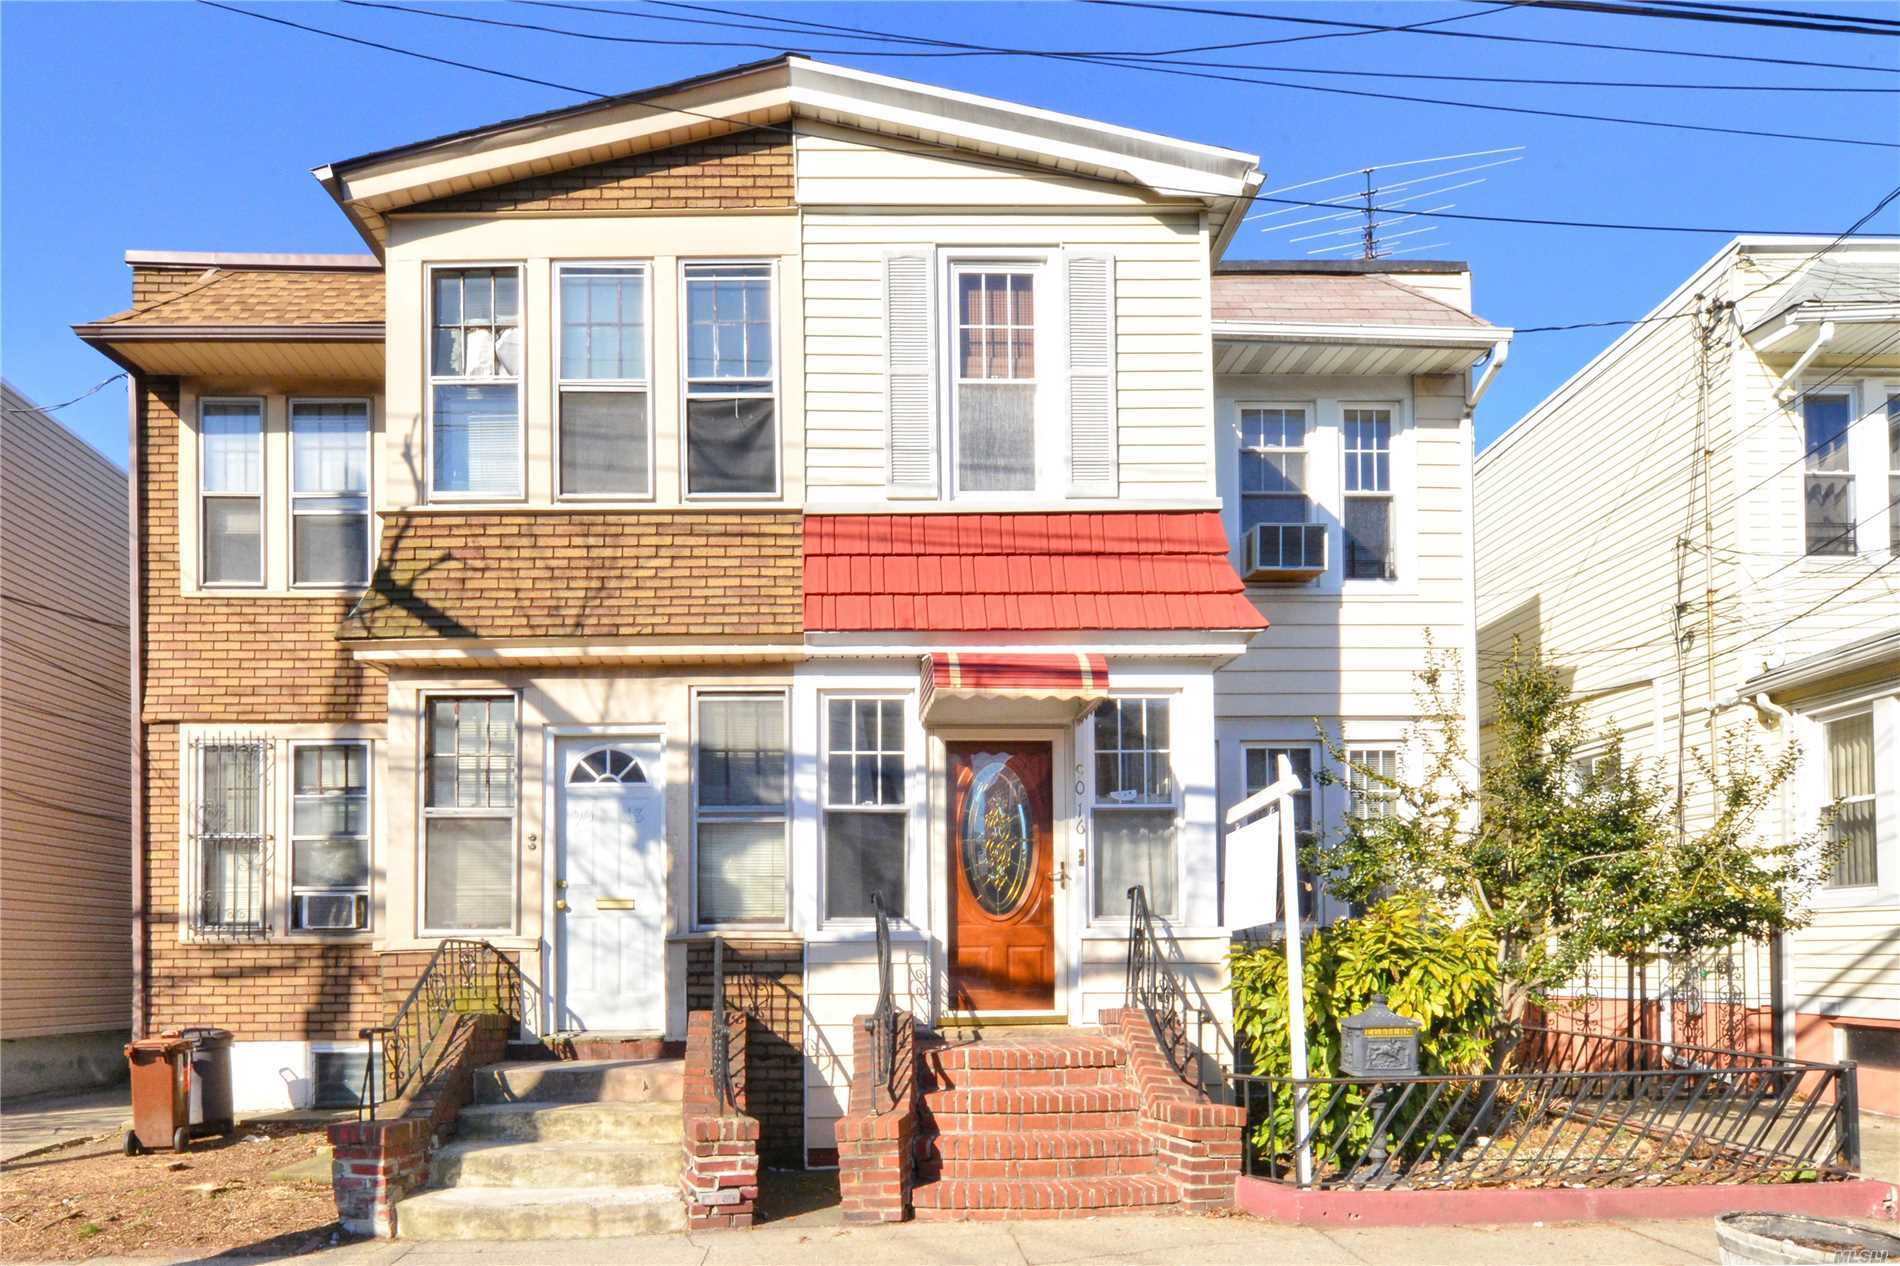 Great opportunity to be a landlord and live off your tenants income. Charming Semi Detached 2-Family - Located On A Quiet Tree-Lined Street. Convenient To All Shopping, Subway & Houses Of Worship. Call today for full details.